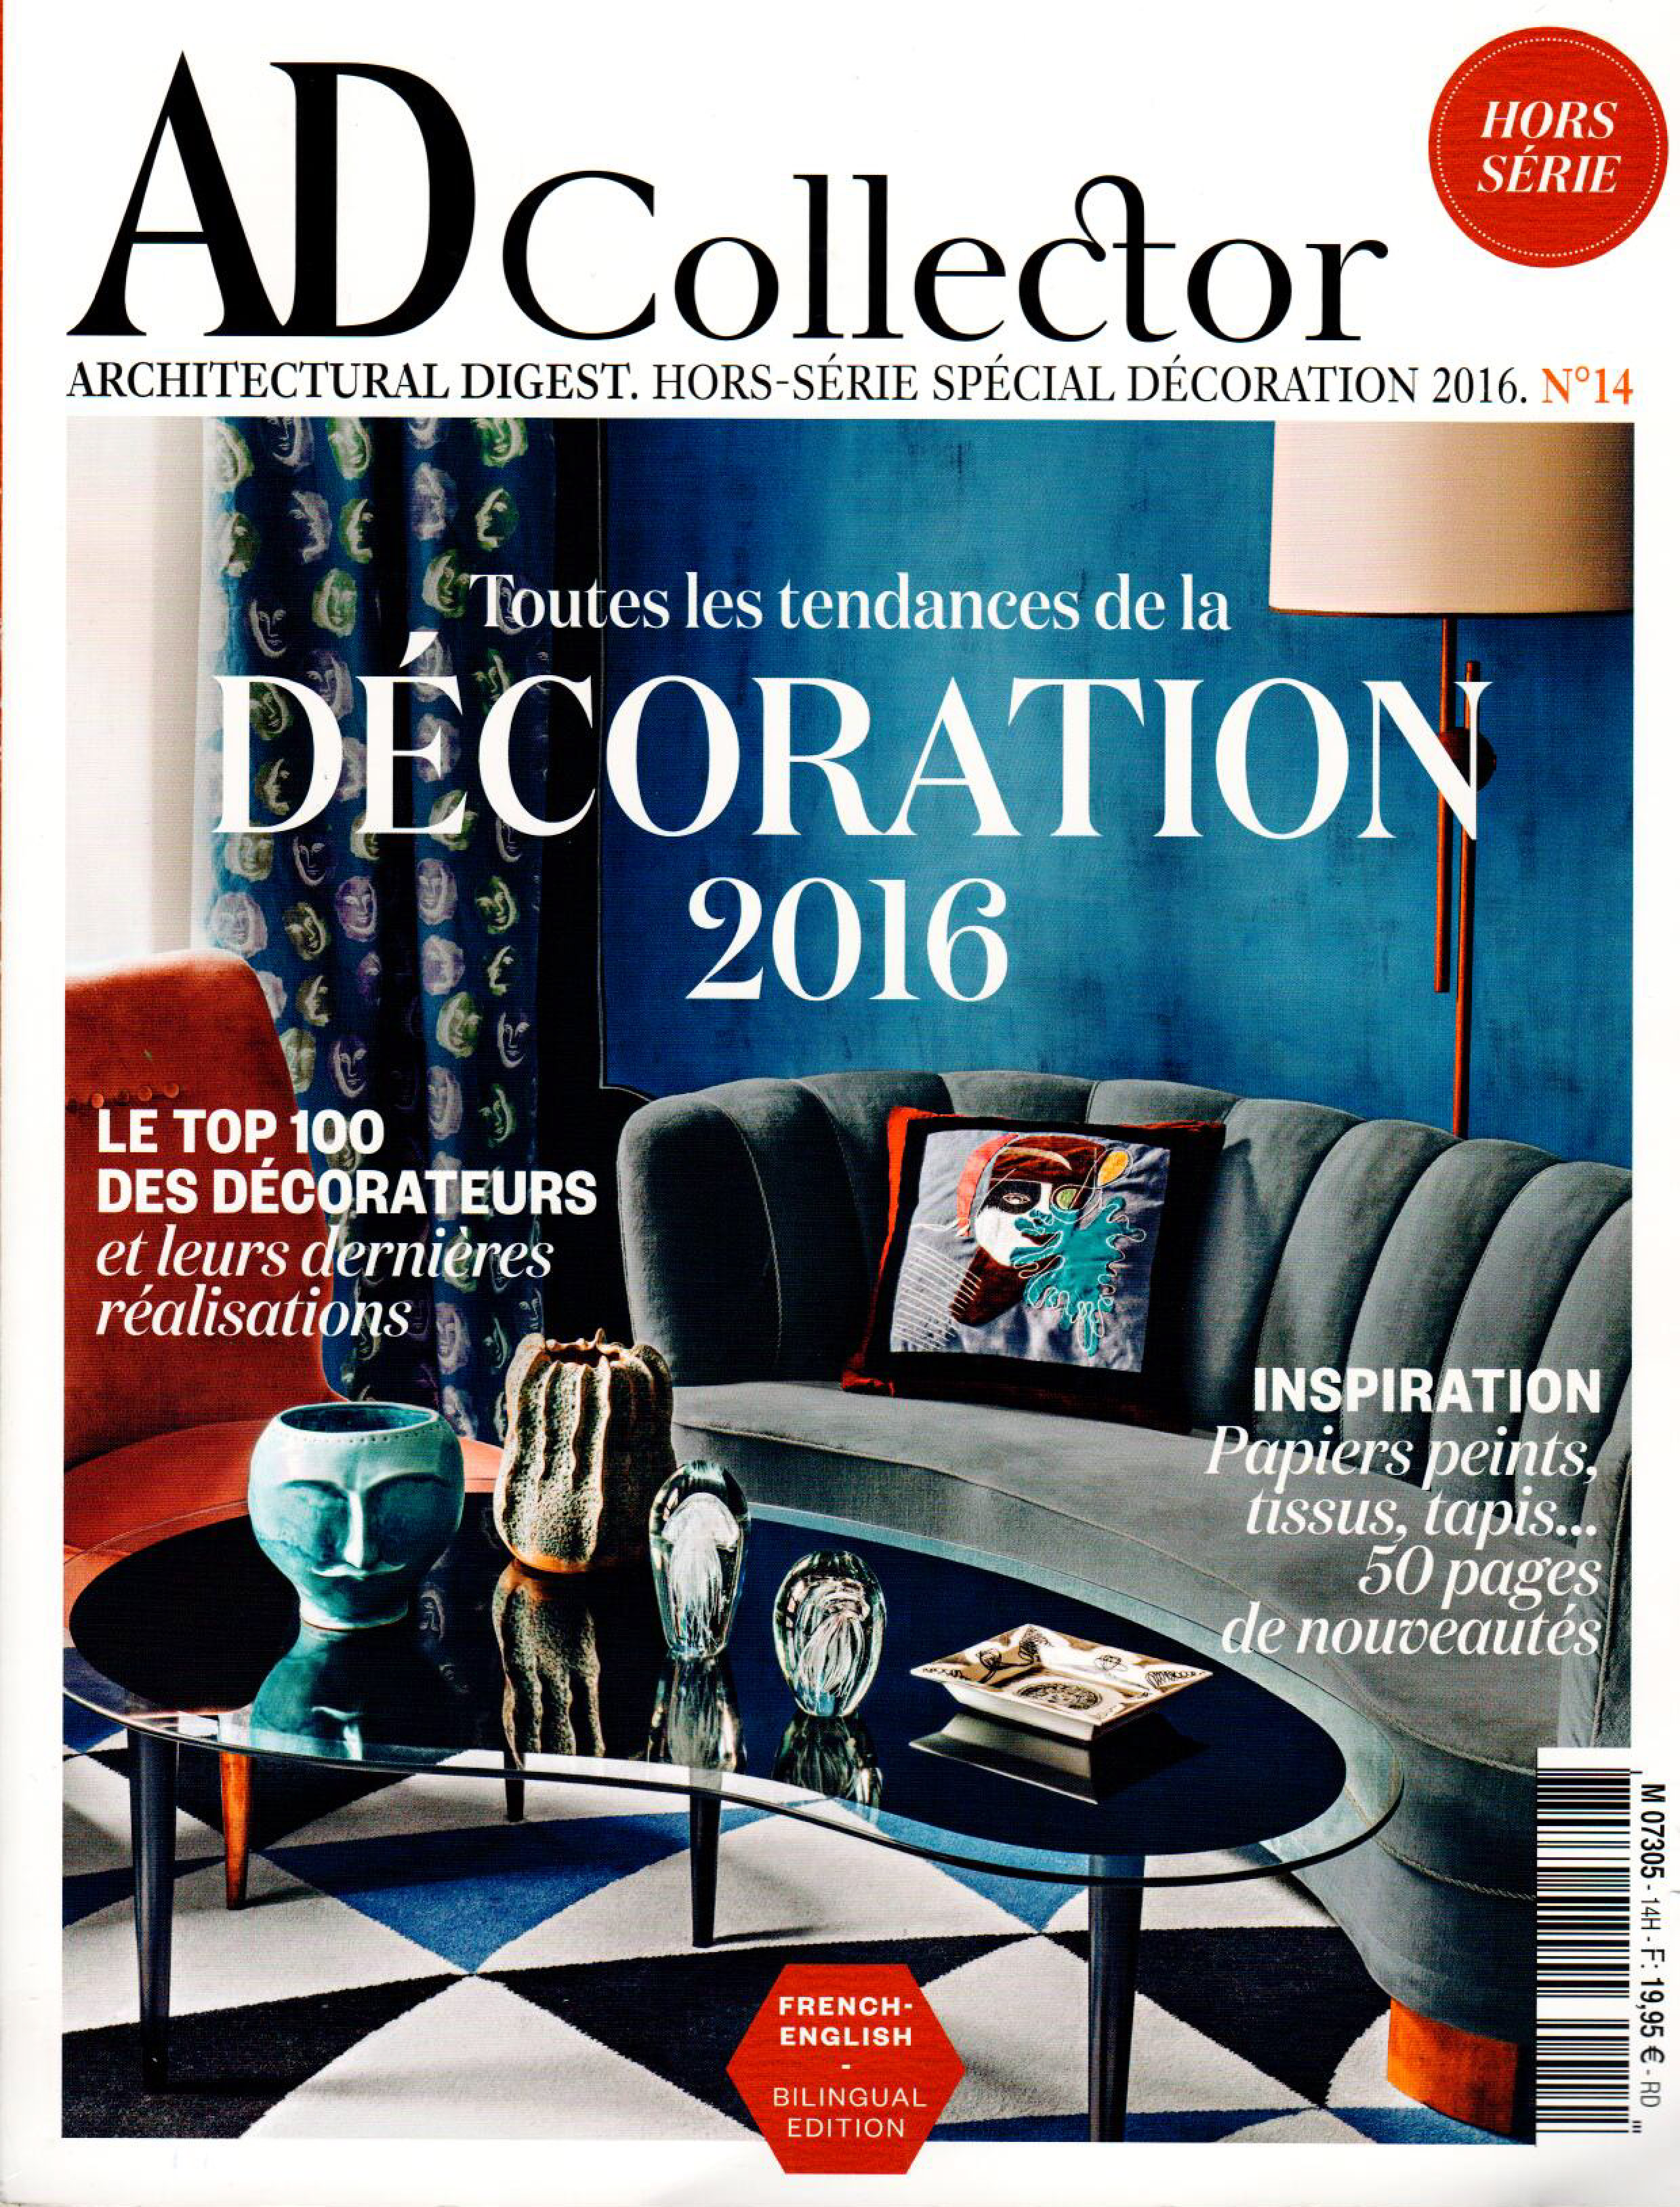 ADCollector cover